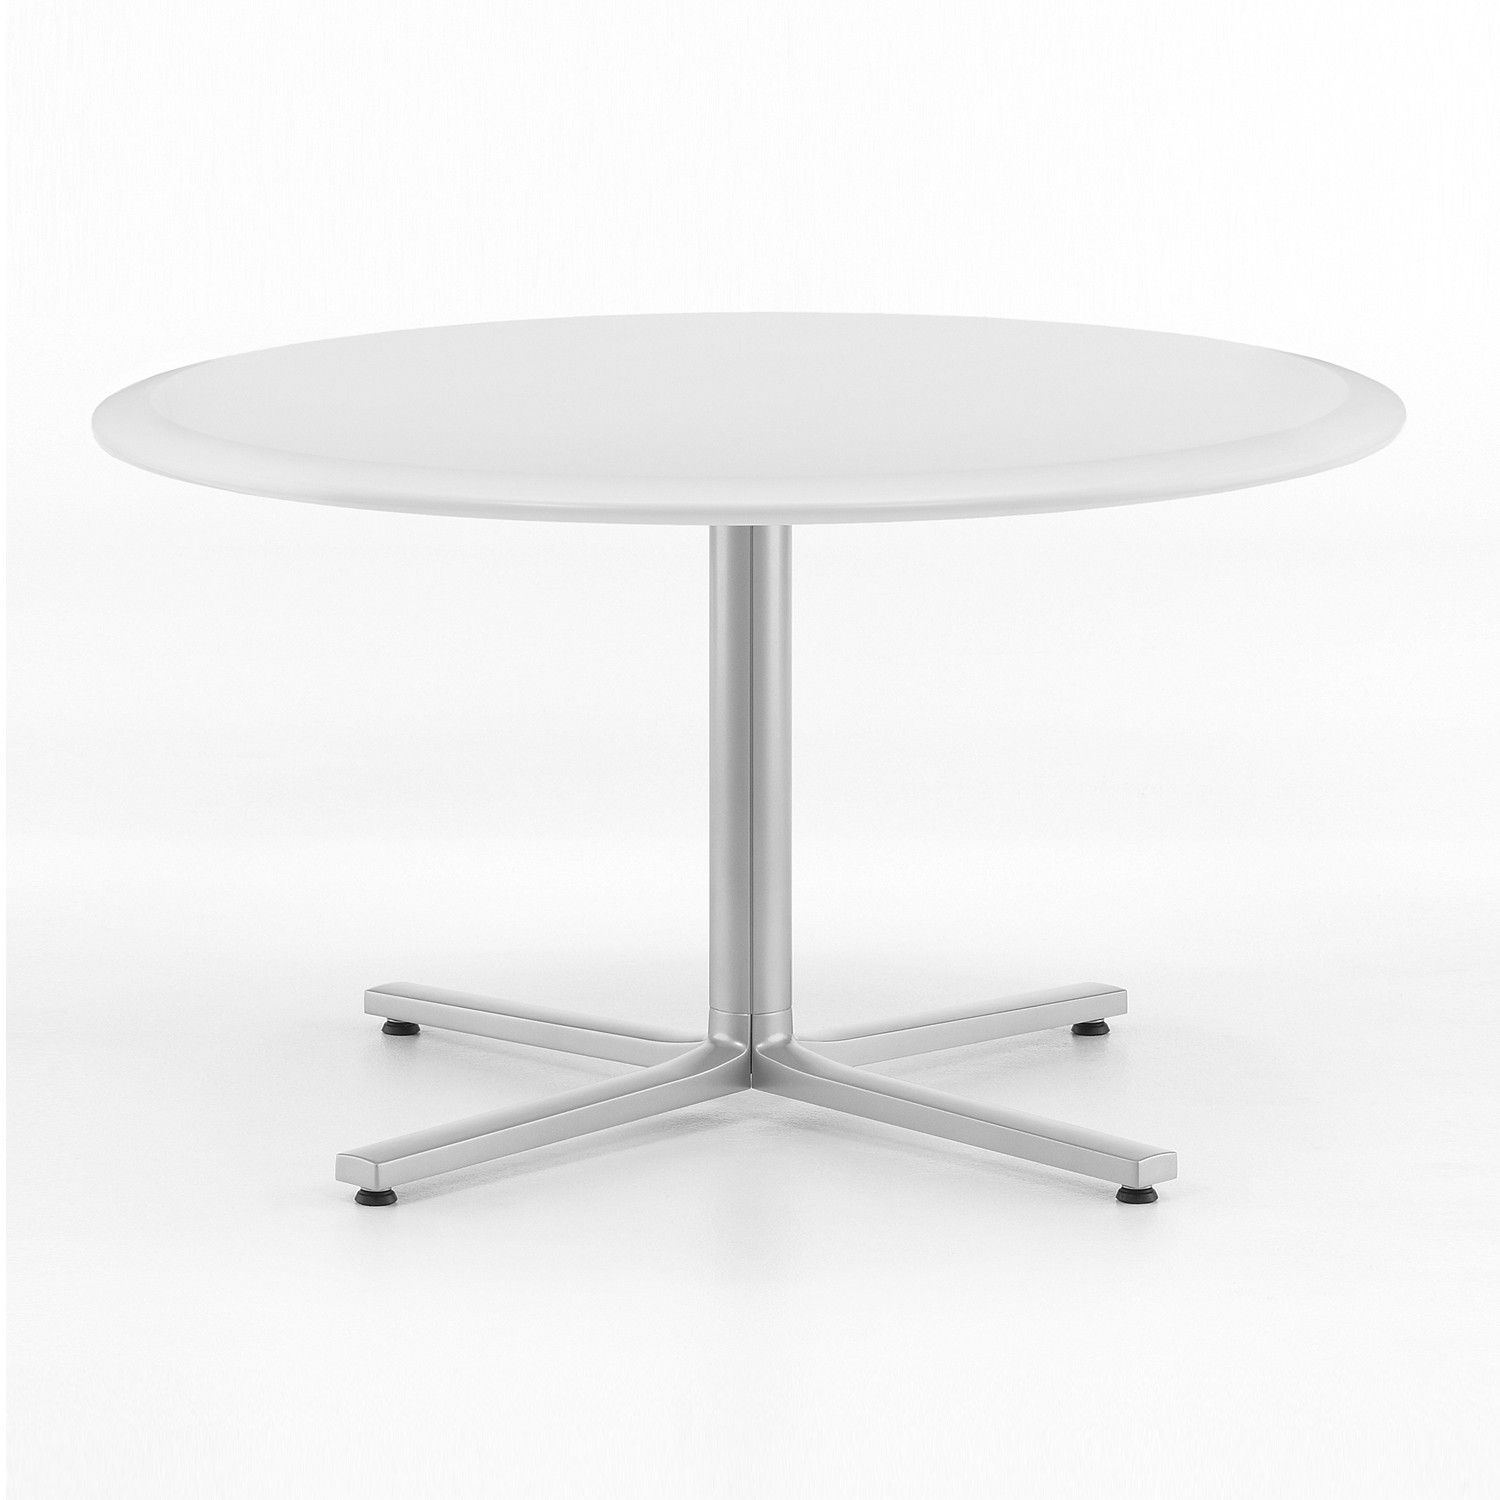 everywhere table occasional  herman miller office furniture and  - everywhere table occasional everywhere table occasional by herman miller